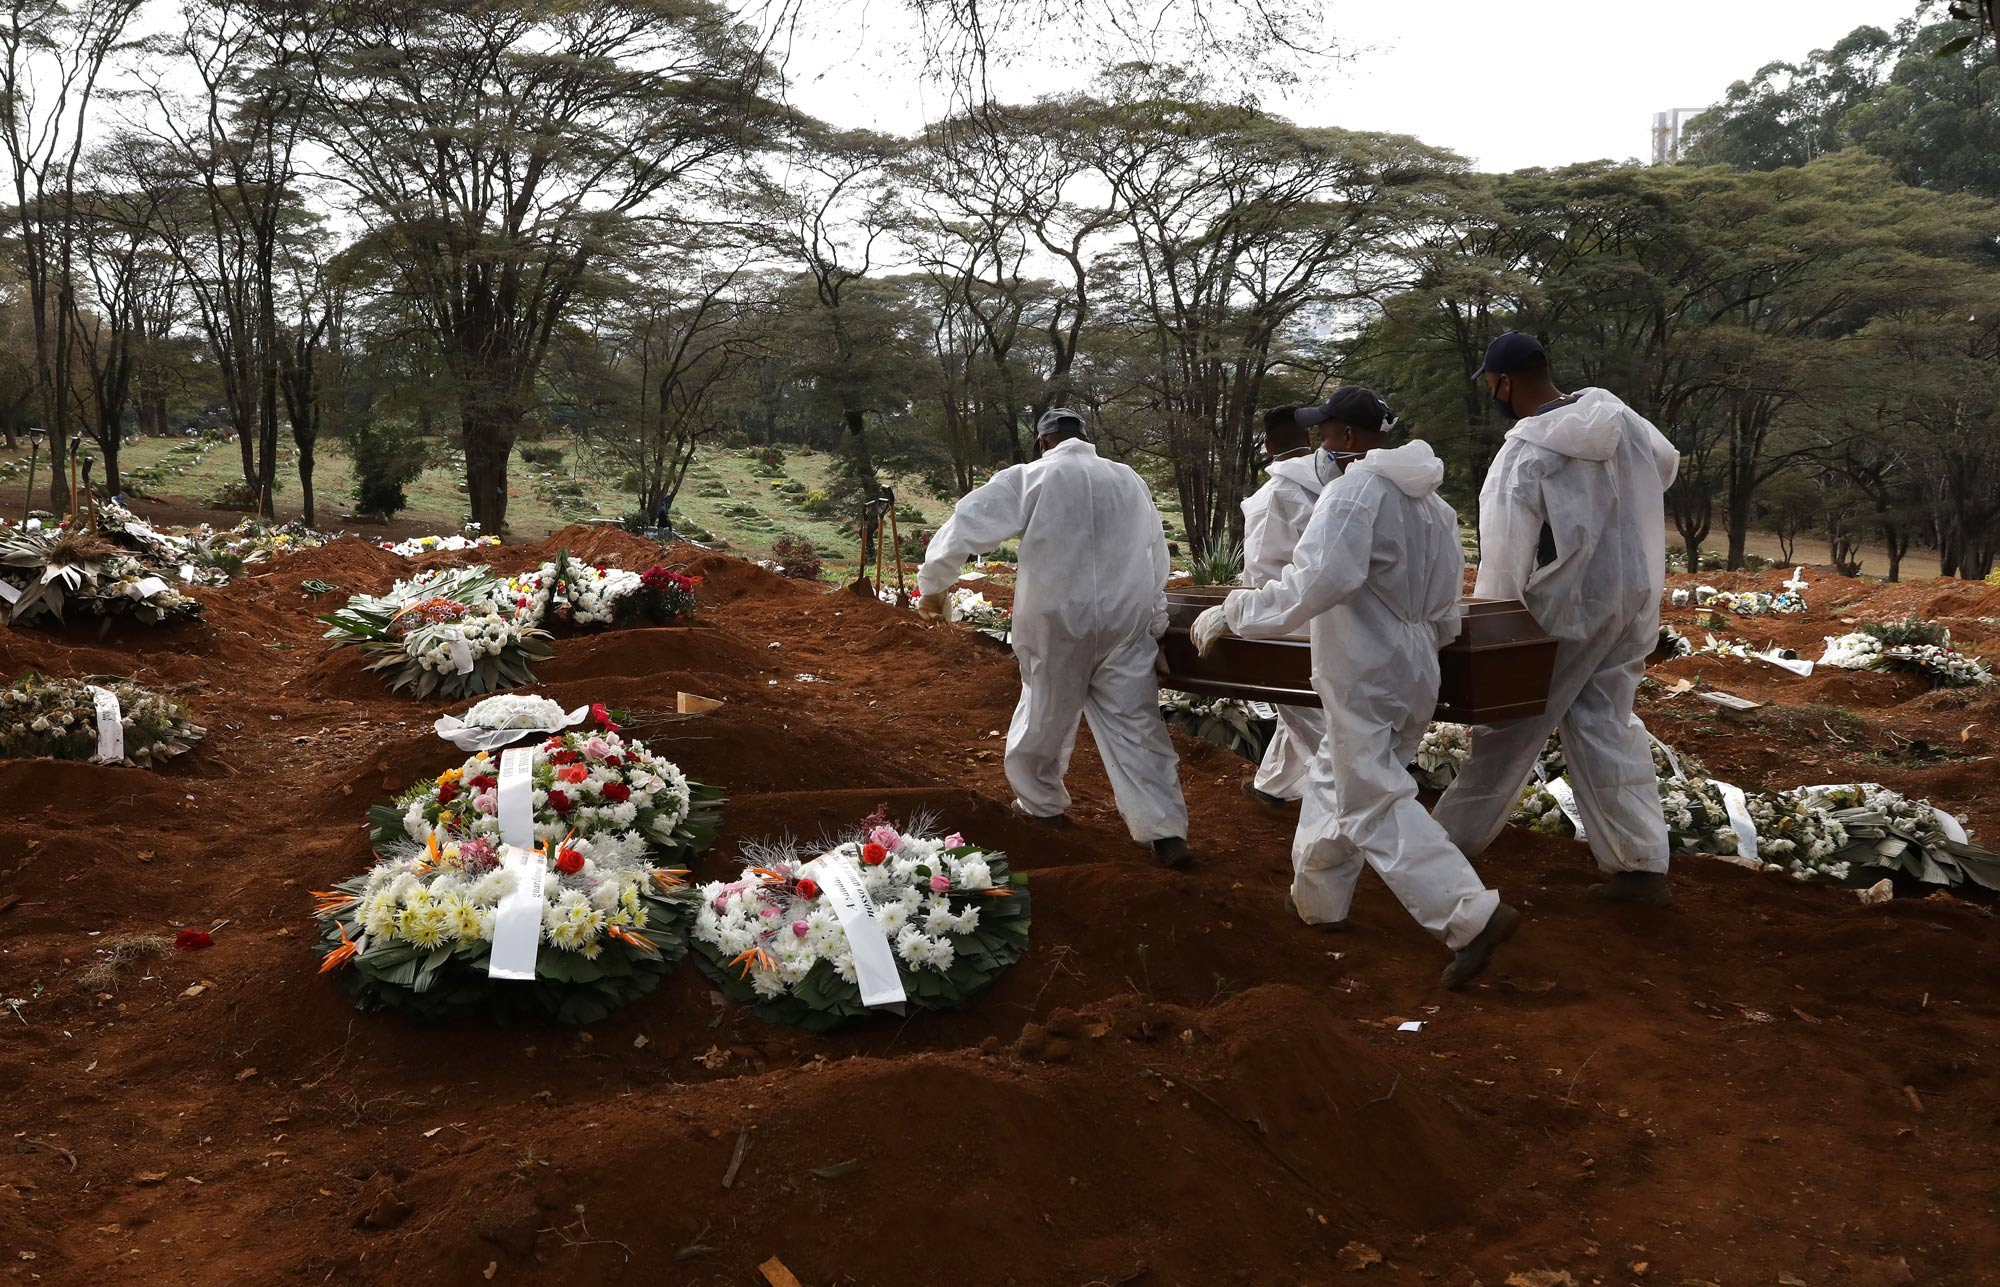 Cemetery workers carry the coffin of a COVID-19 victim to be buried at Vila Formosa cemetery on June 17 in Sao Paulo, Brazil.